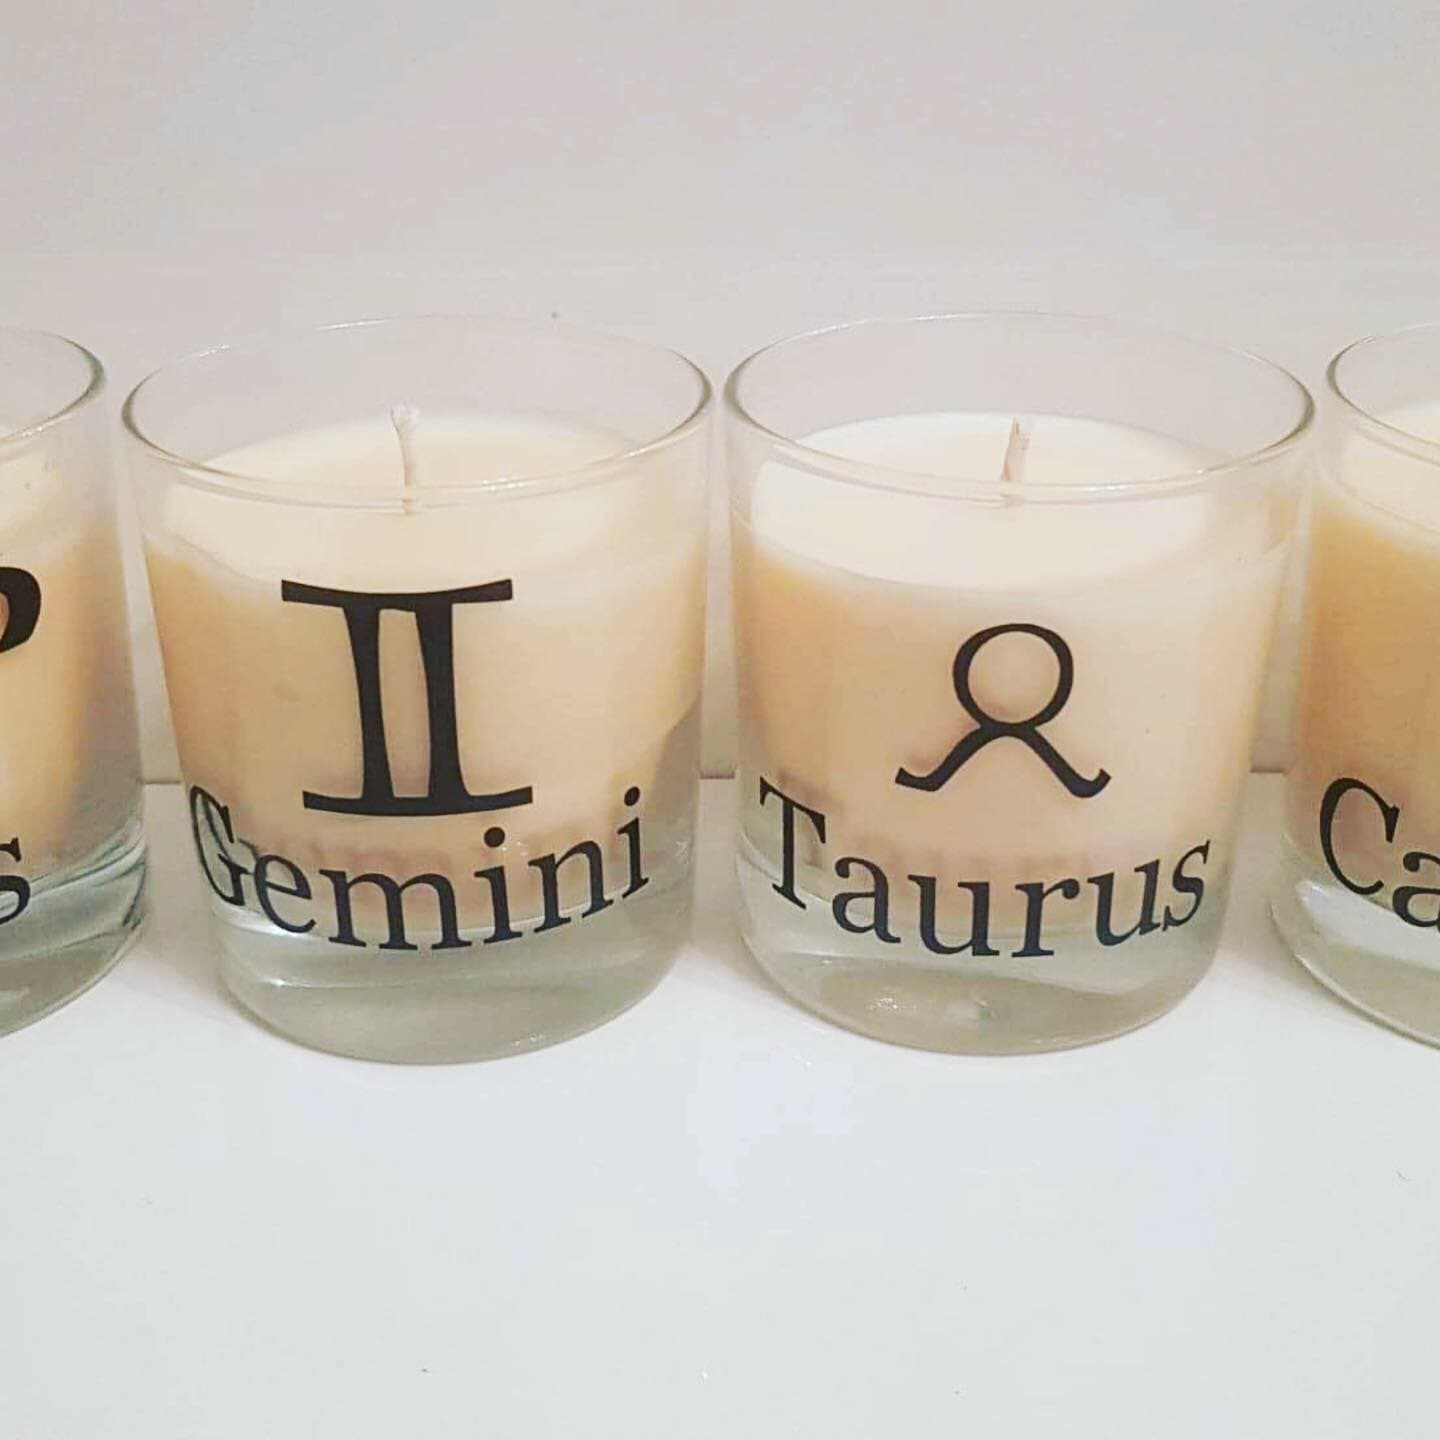 Soy Wax Zodiac Candles - Virgo - with scent to match the star sign - Pugglewick Candles